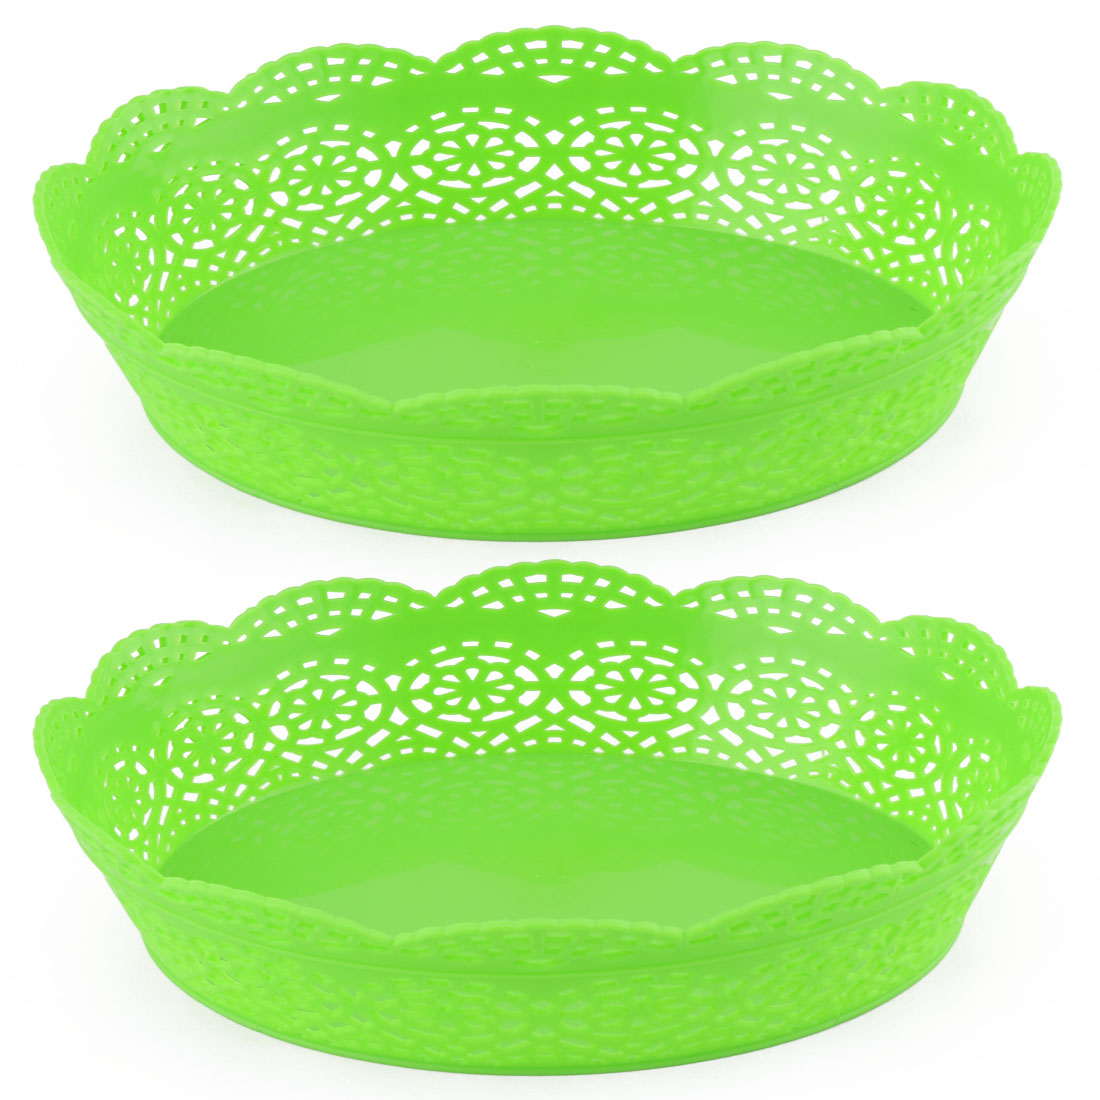 Home Plastic Flower Shaped Hollow Out Fruit Plate Vegetable Container Green 2pcs